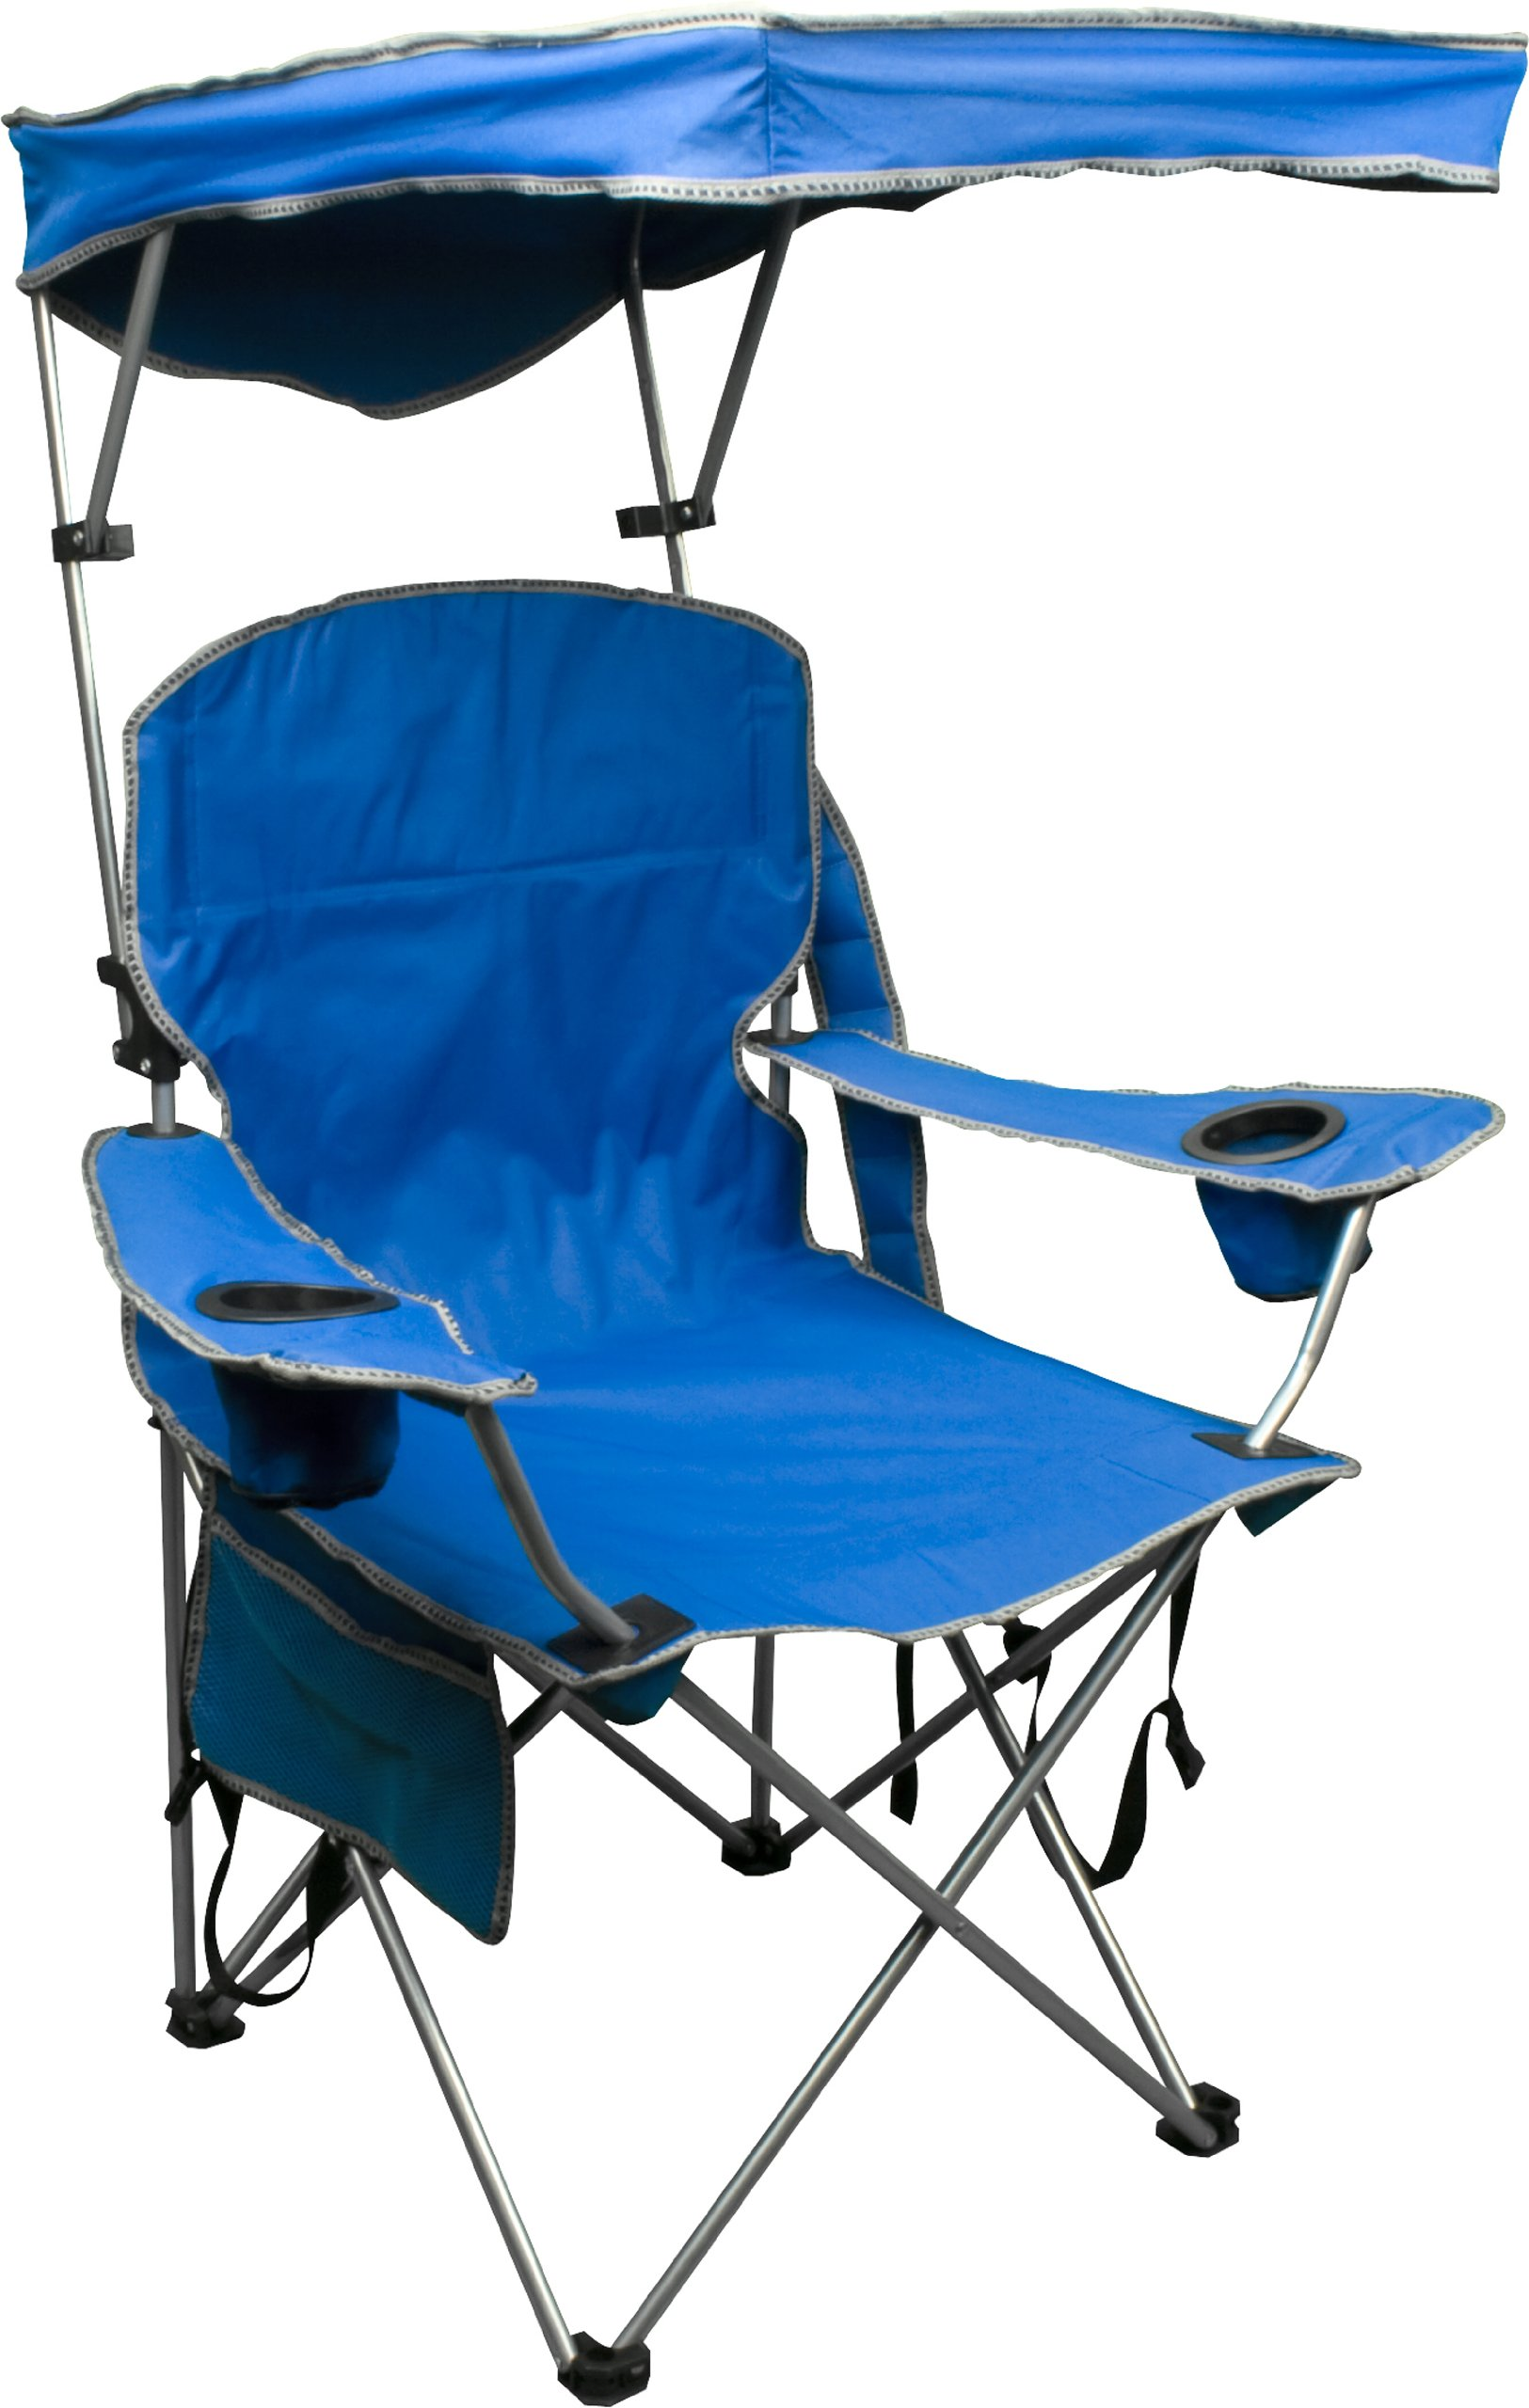 Quik Shade Adjustable Canopy Folding Camp Chair - Royal Blue by Quik Shade